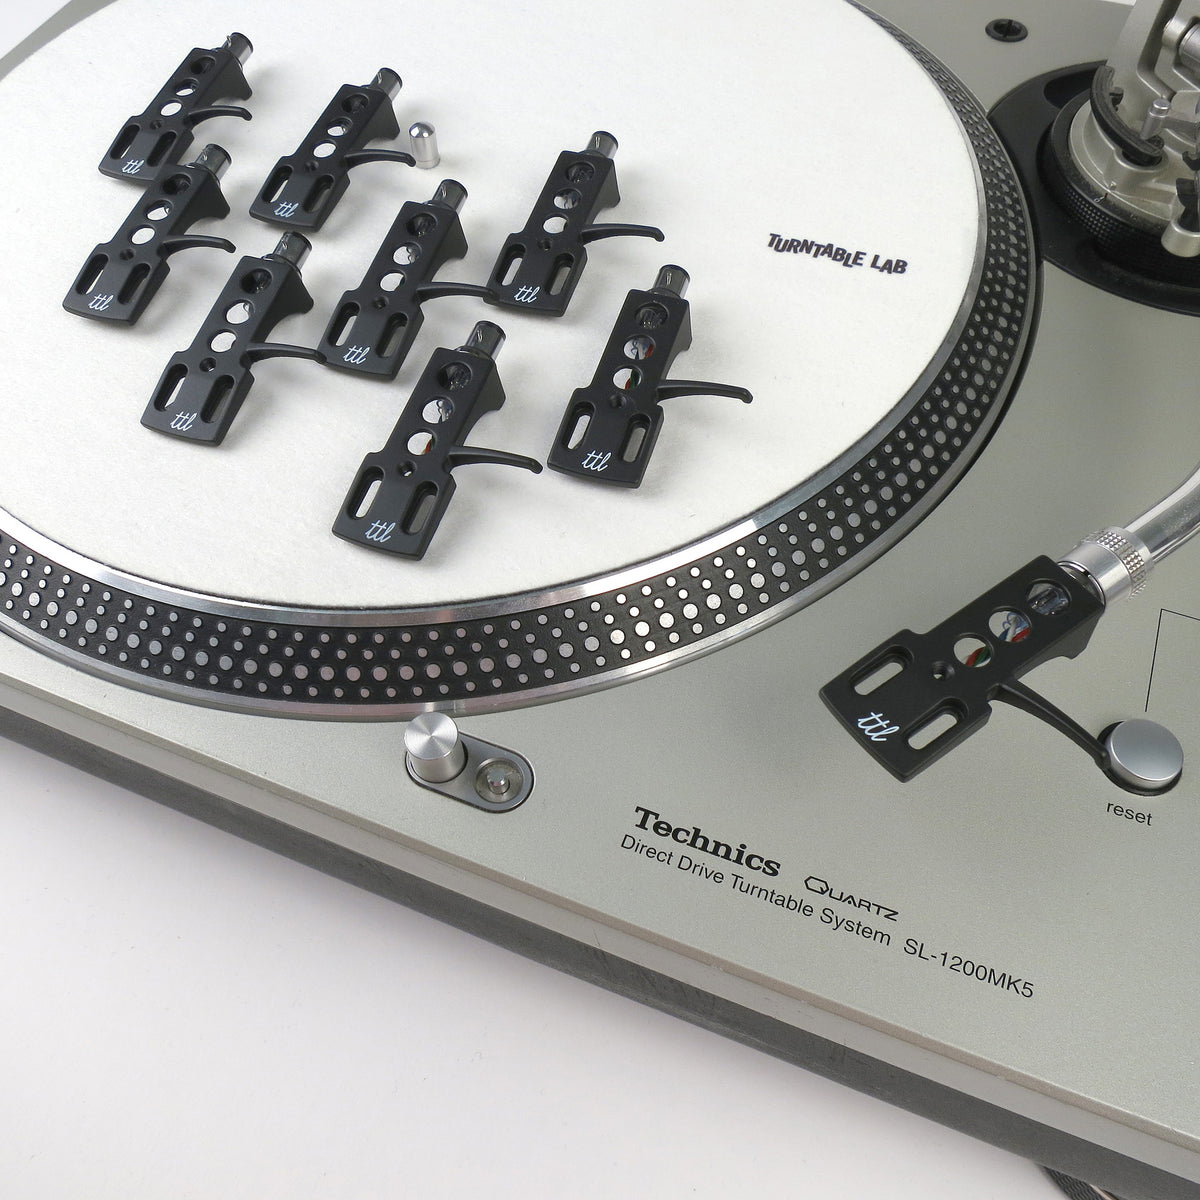 Audio-Technica: AT-HS1 Headshell - Turntable Lab Edition